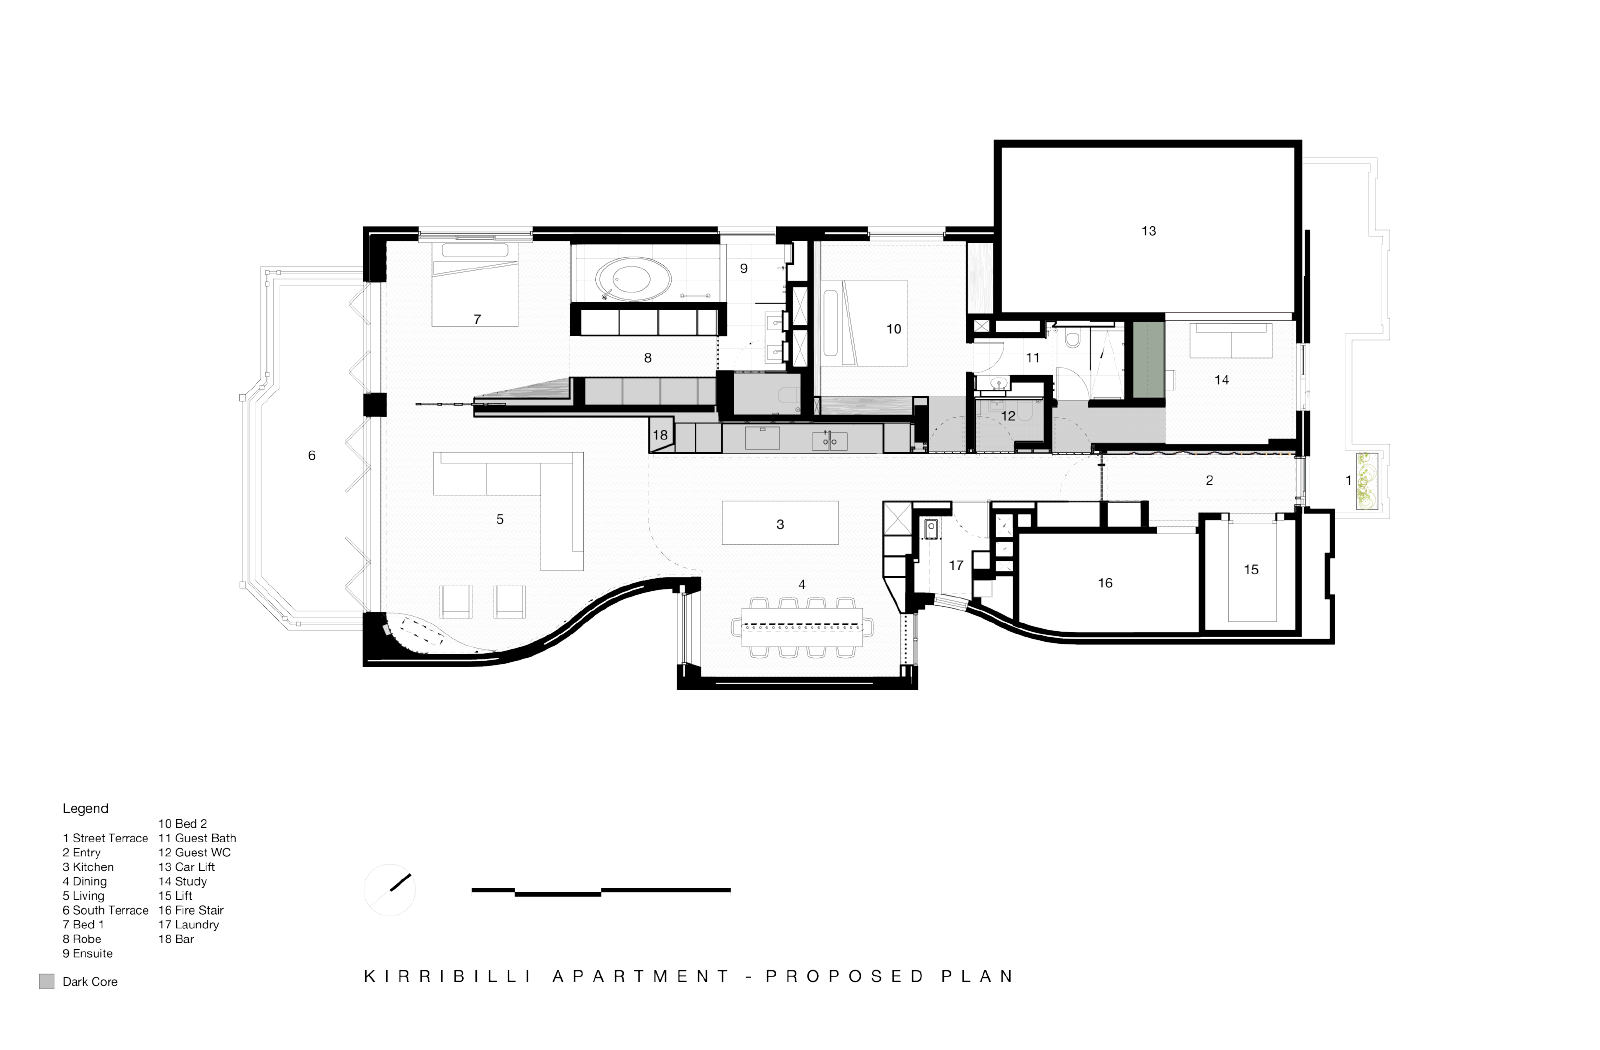 Kirribilli Apartment proposed plan- an interior fit-out project by McGregor Westlake Architecture